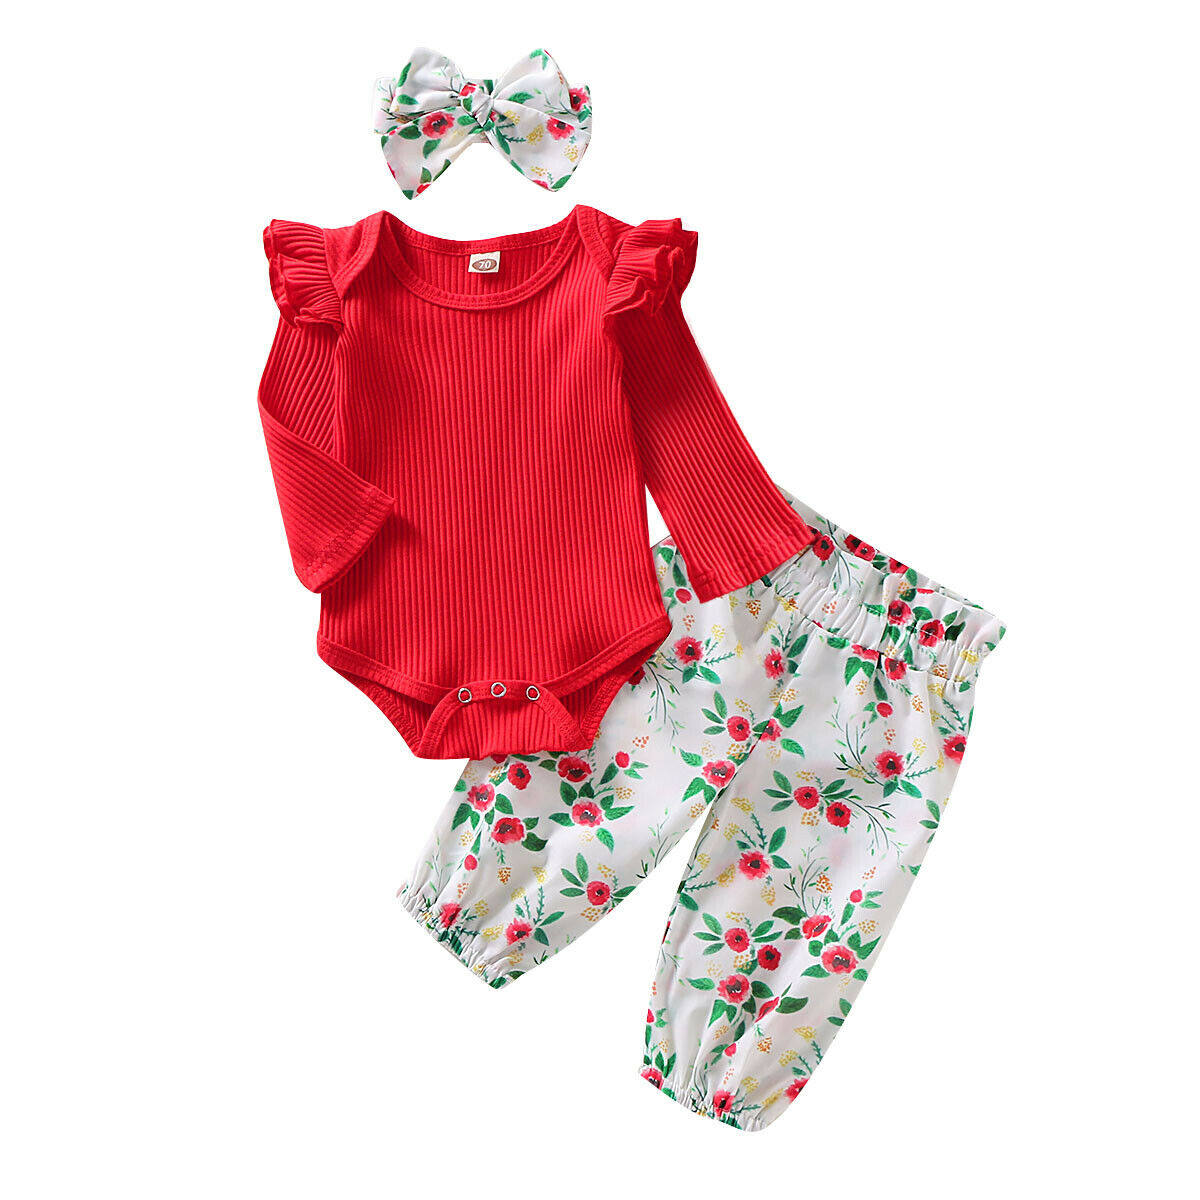 3PCS Cute Newborn Baby Girl Outfits Clothes Tops Romper+Long Pants Set US